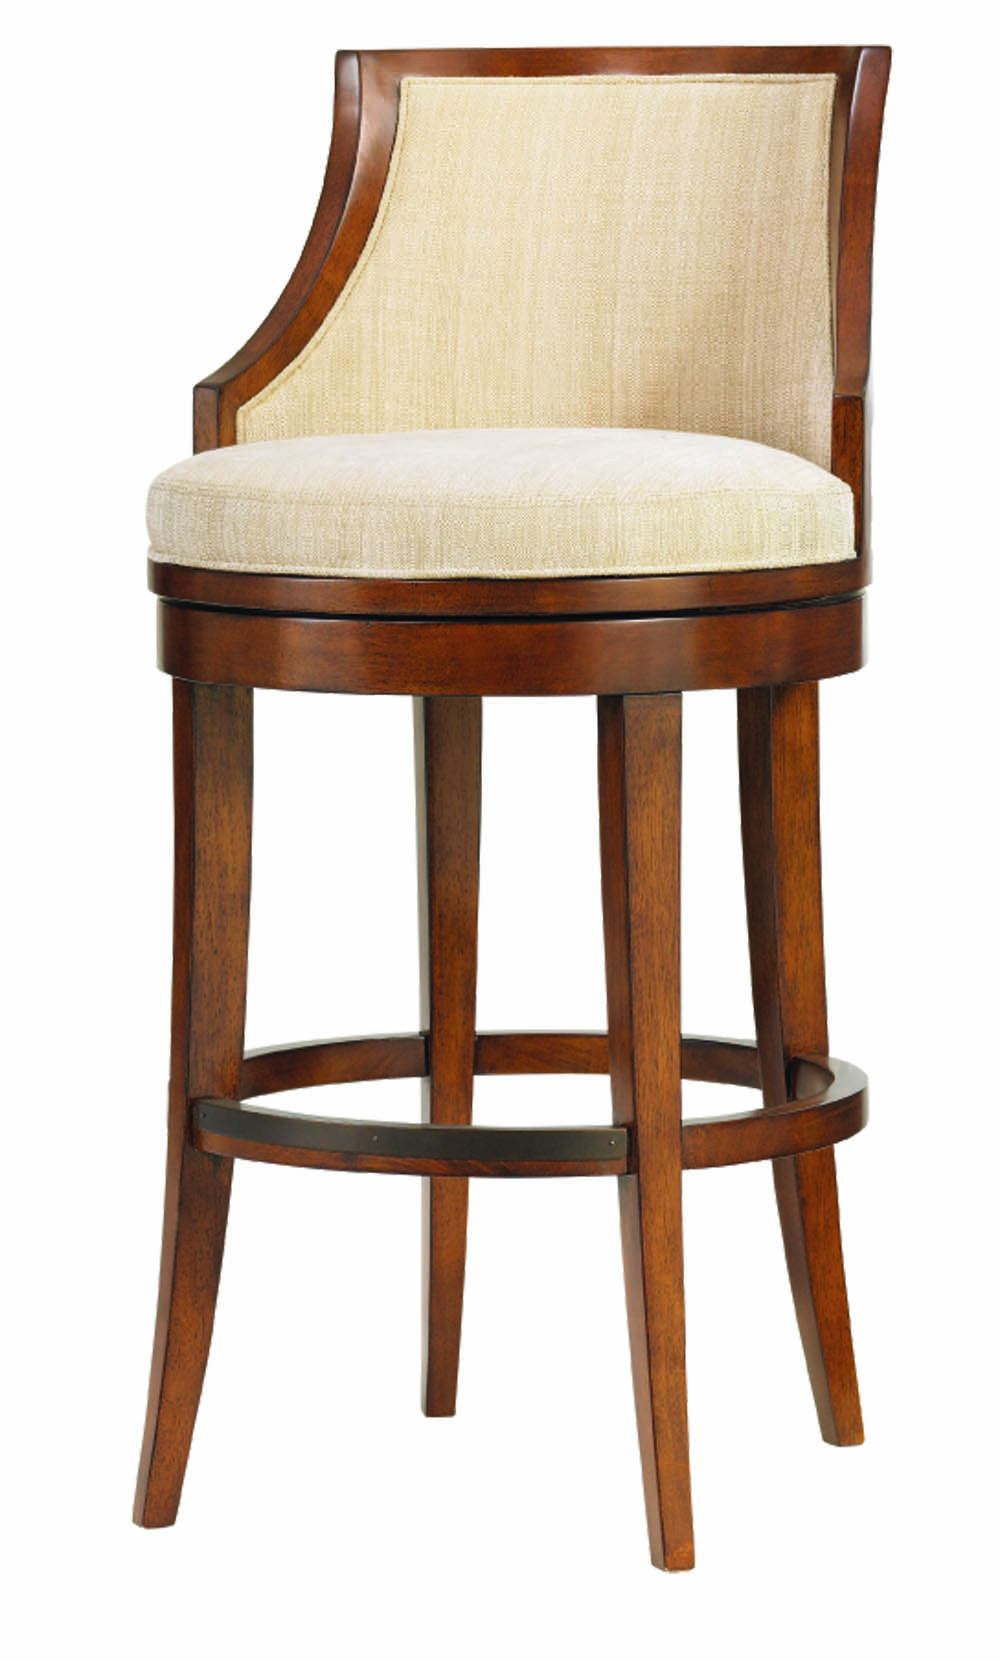 Bar Stools For Sale Tommy Bahama Ocean Club Cabana Swivel Bar Stool Sale Ends May 18